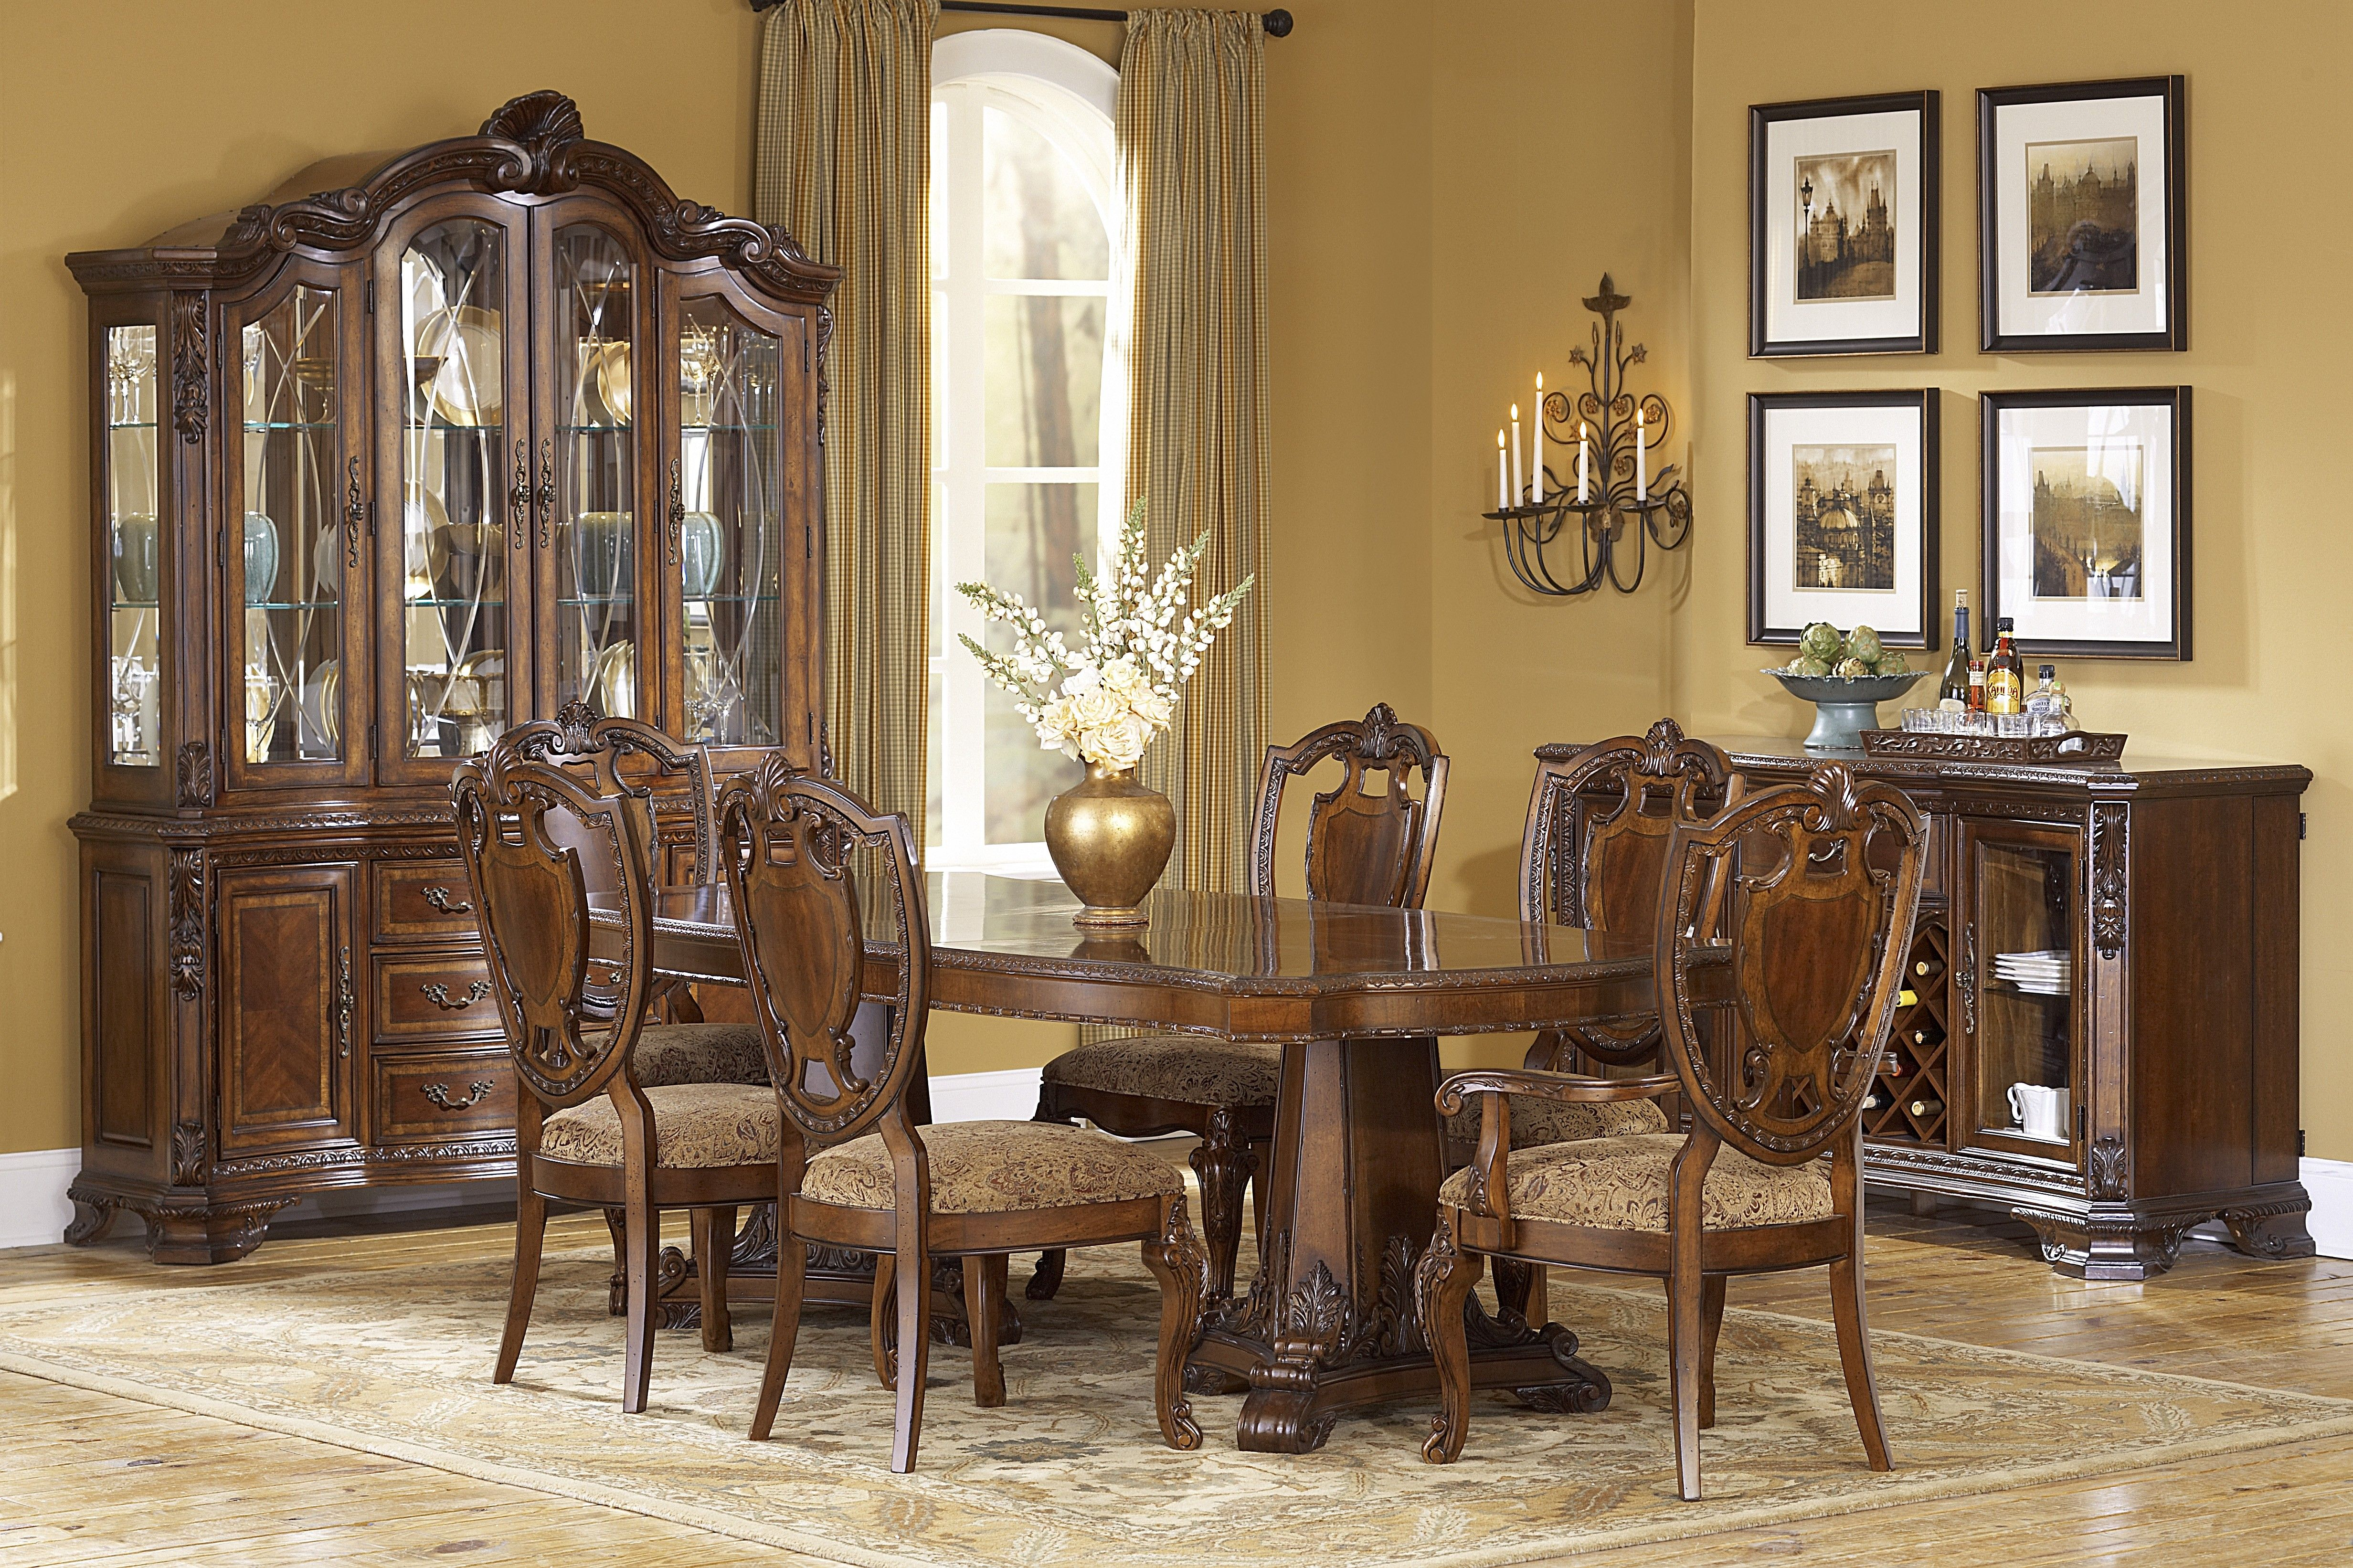 Old World Dining Room Chairs  Best Spray Paint For Wood Furniture Delectable Old Fashioned Dining Room Sets Design Ideas